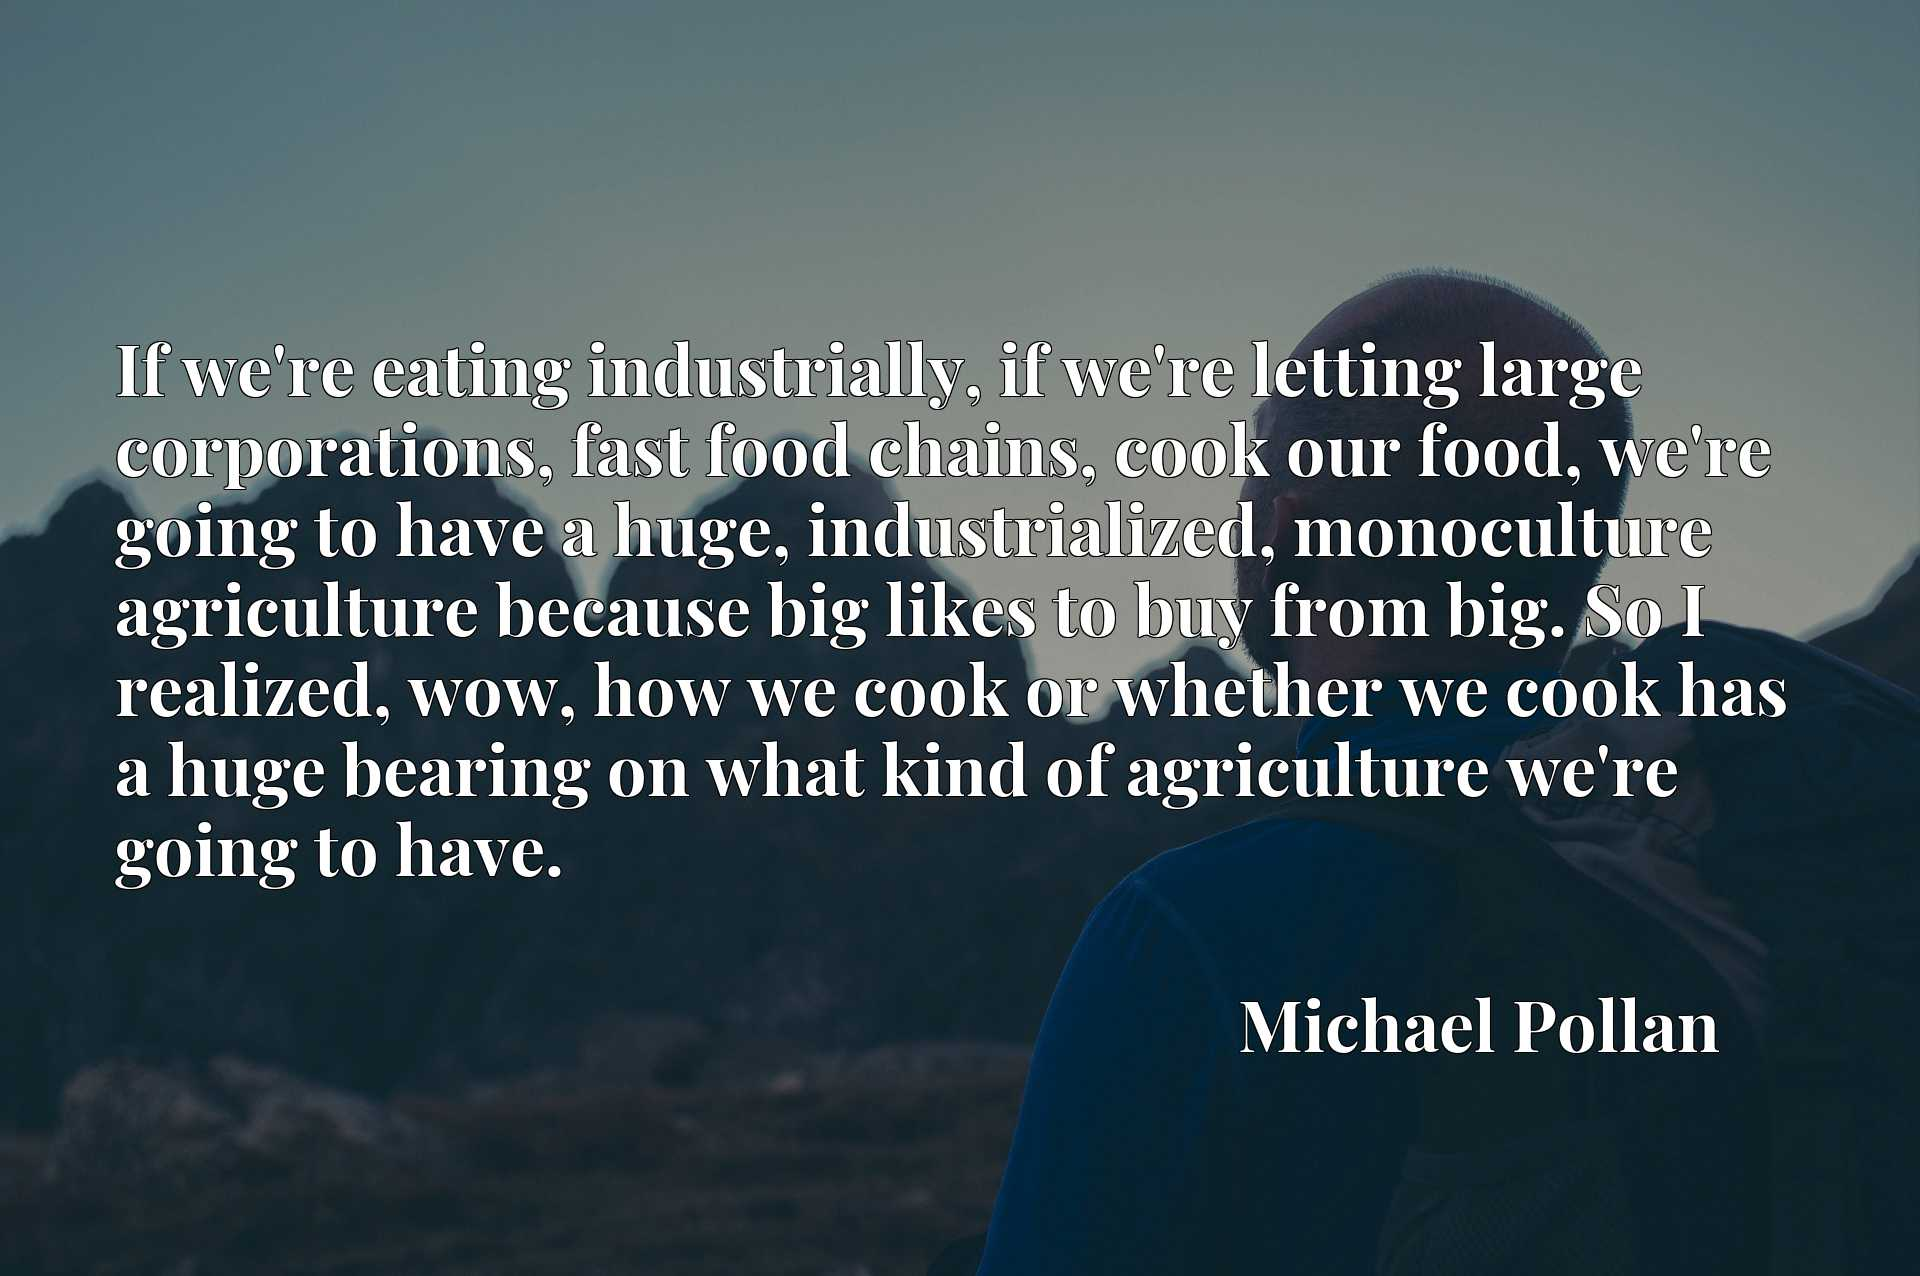 If we're eating industrially, if we're letting large corporations, fast food chains, cook our food, we're going to have a huge, industrialized, monoculture agriculture because big likes to buy from big. So I realized, wow, how we cook or whether we cook has a huge bearing on what kind of agriculture we're going to have.